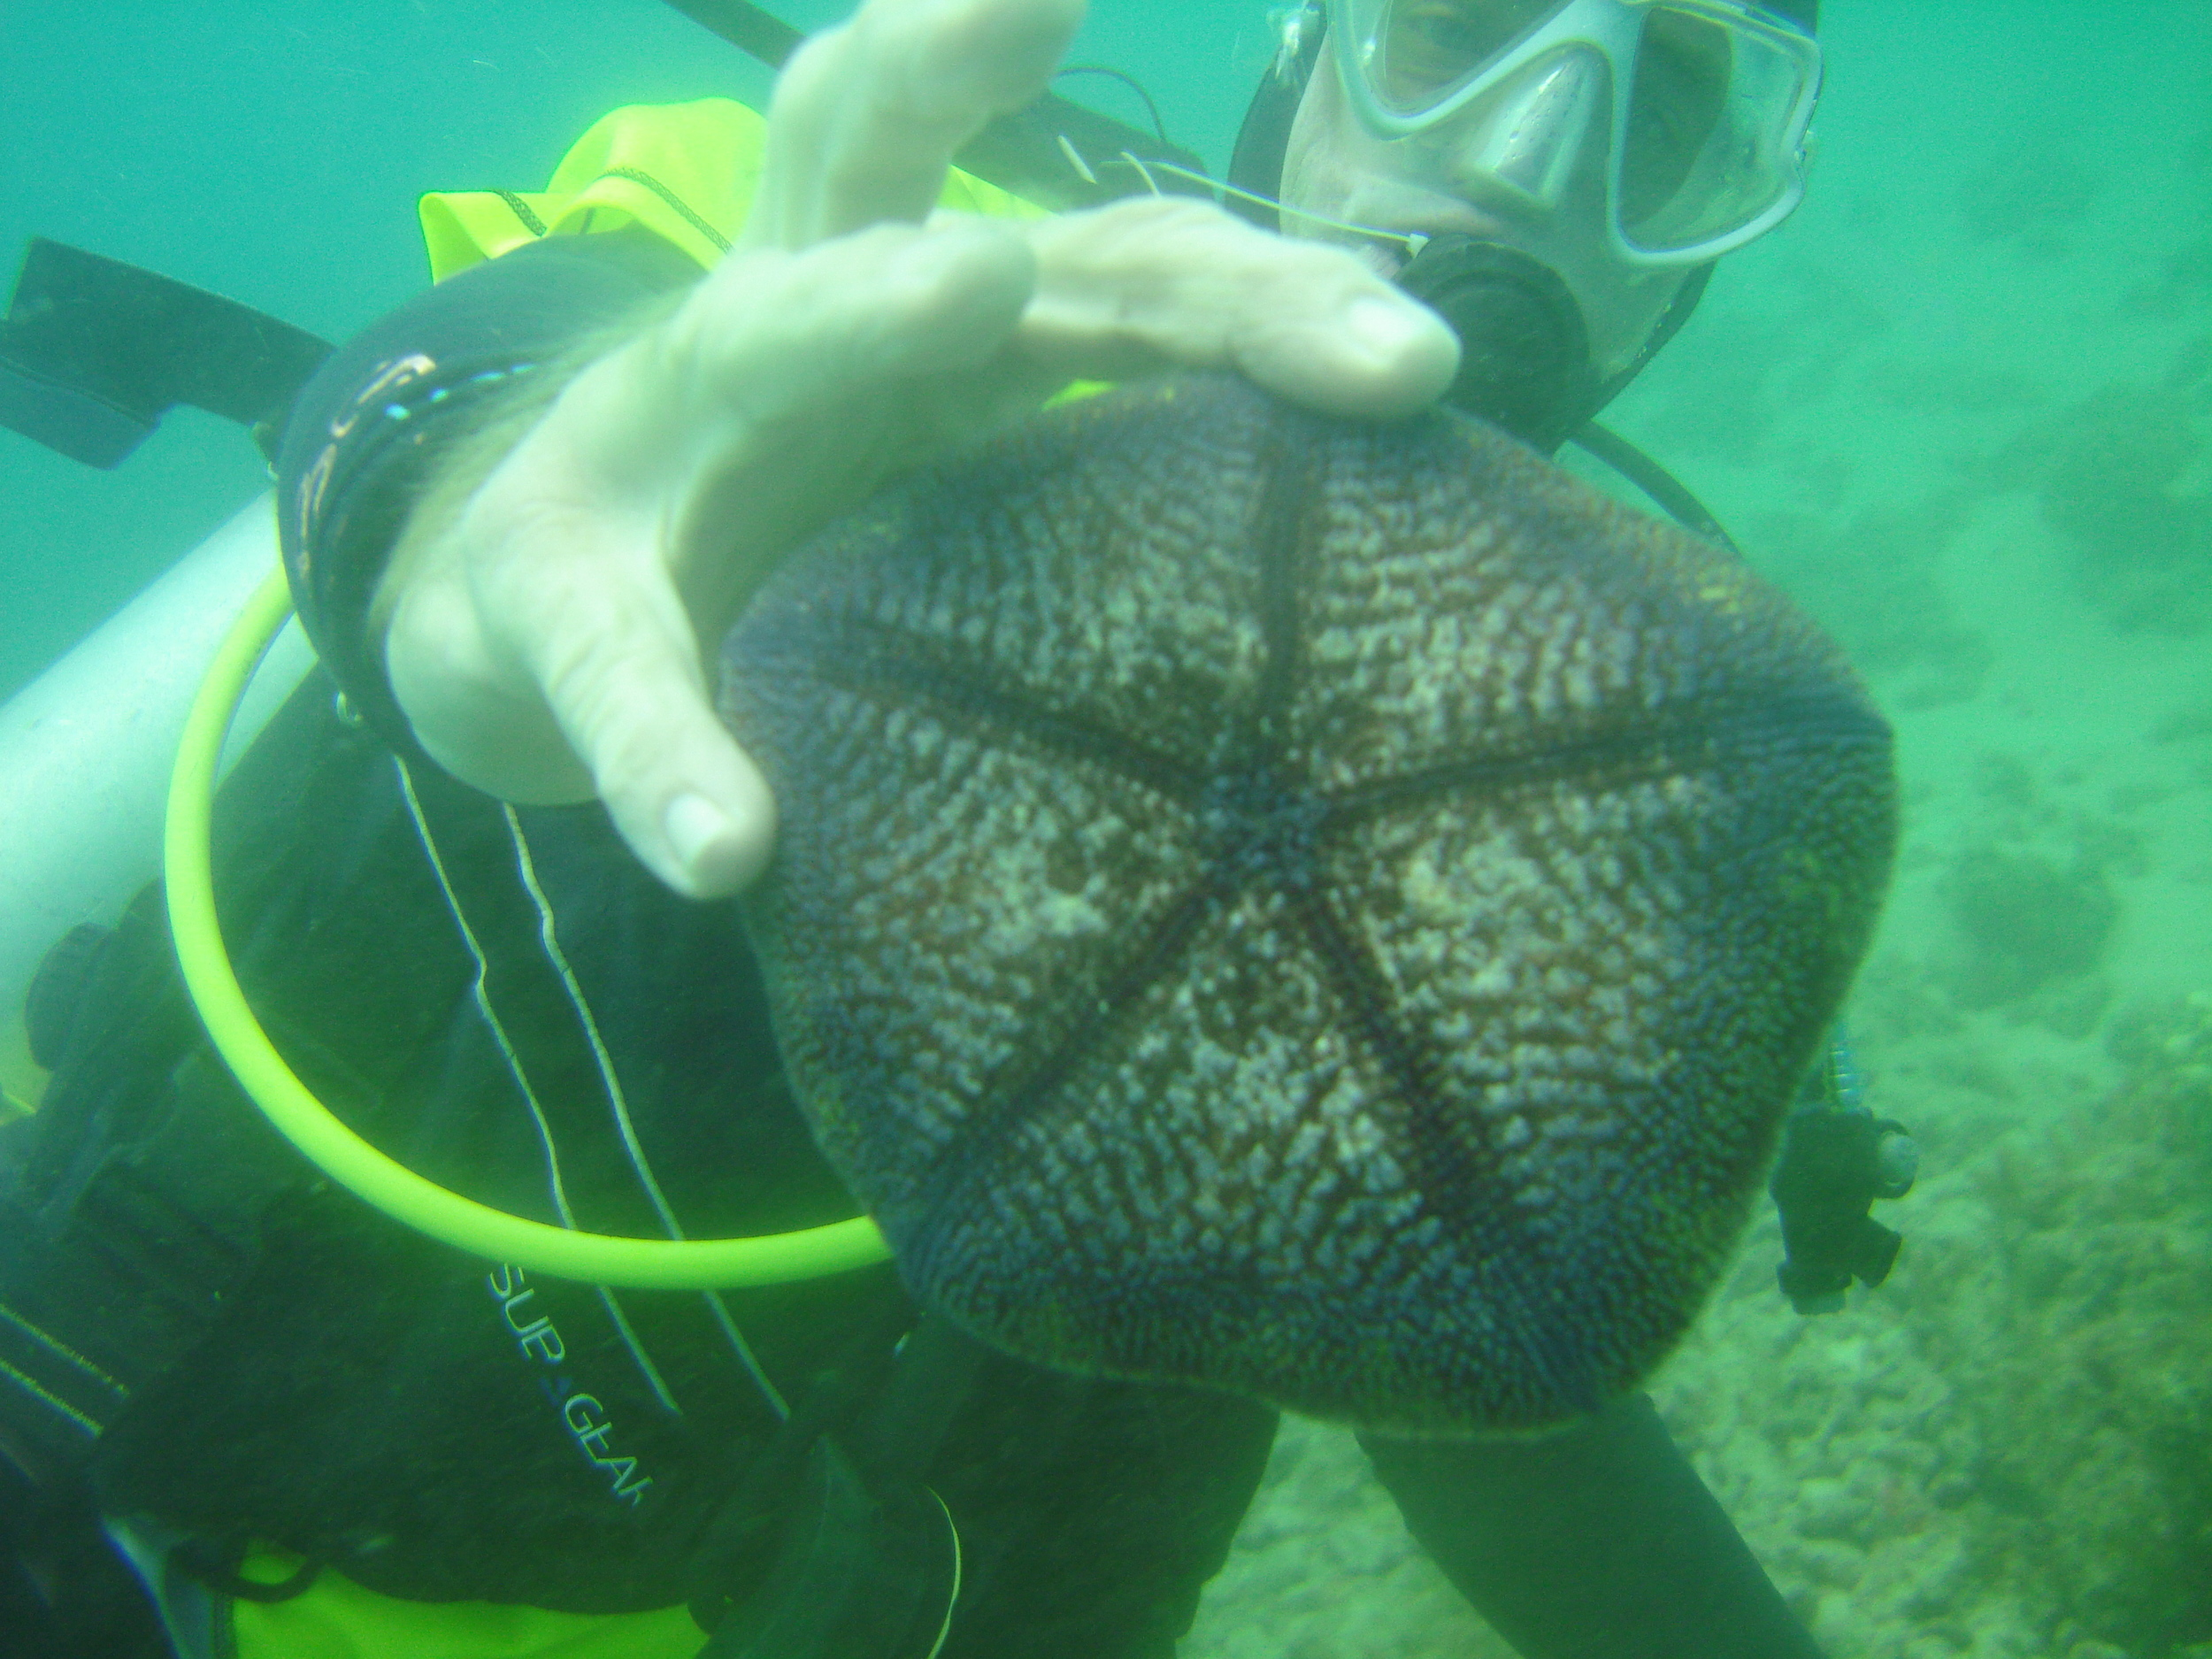 Jessica found a pincushion seastar